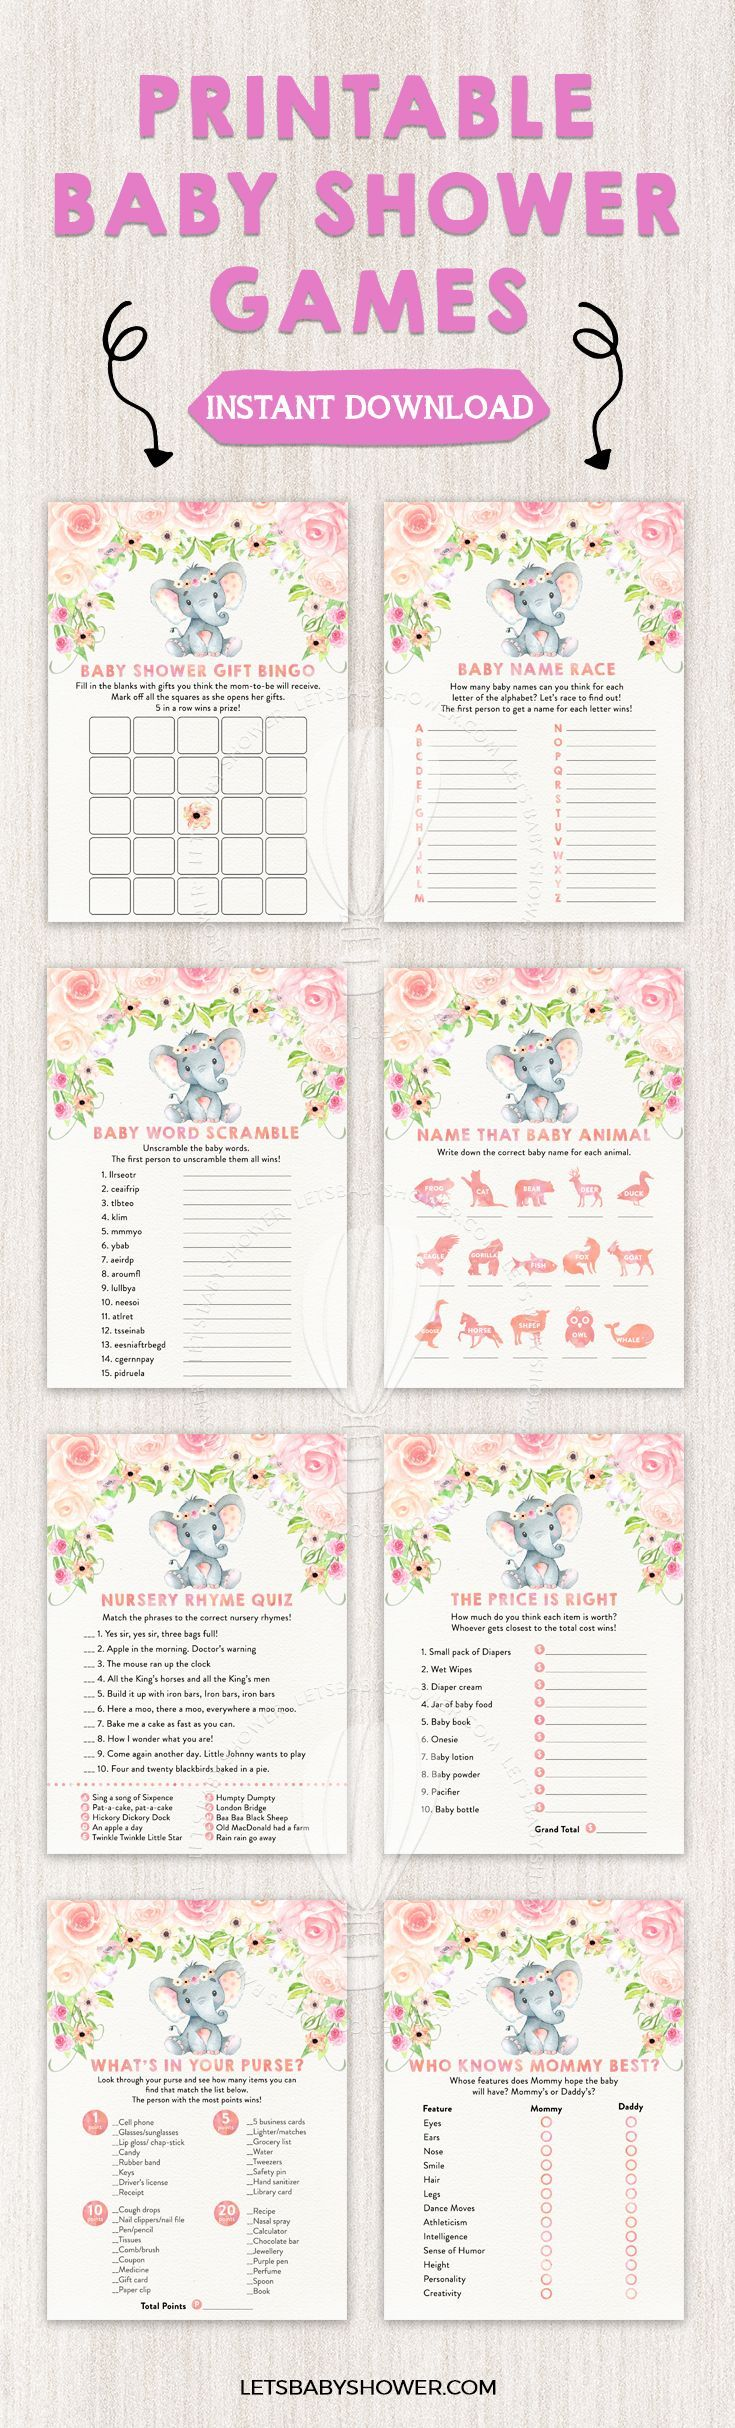 Blush pink floral elephant baby shower game pack pinterest elephant baby shower for girls expocarfo Image collections